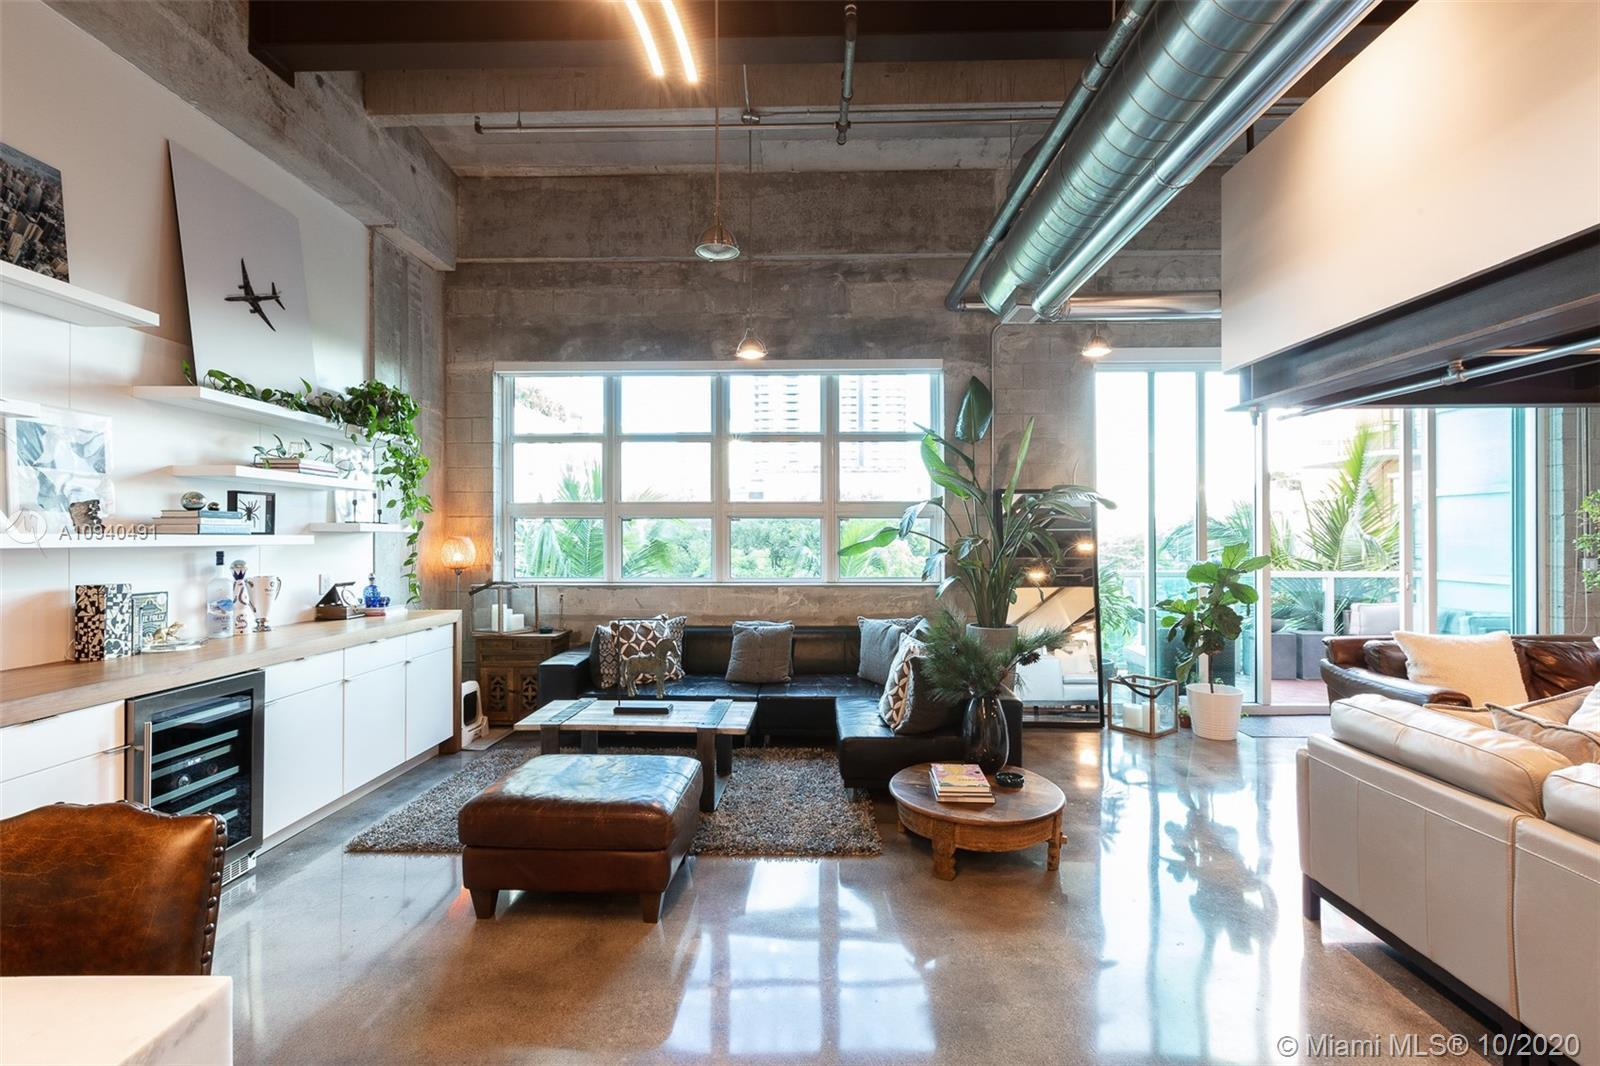 NY Style Industrial Loft recently renovated, 2 bathrooms, 2 levels, and new kitchen and appliances!